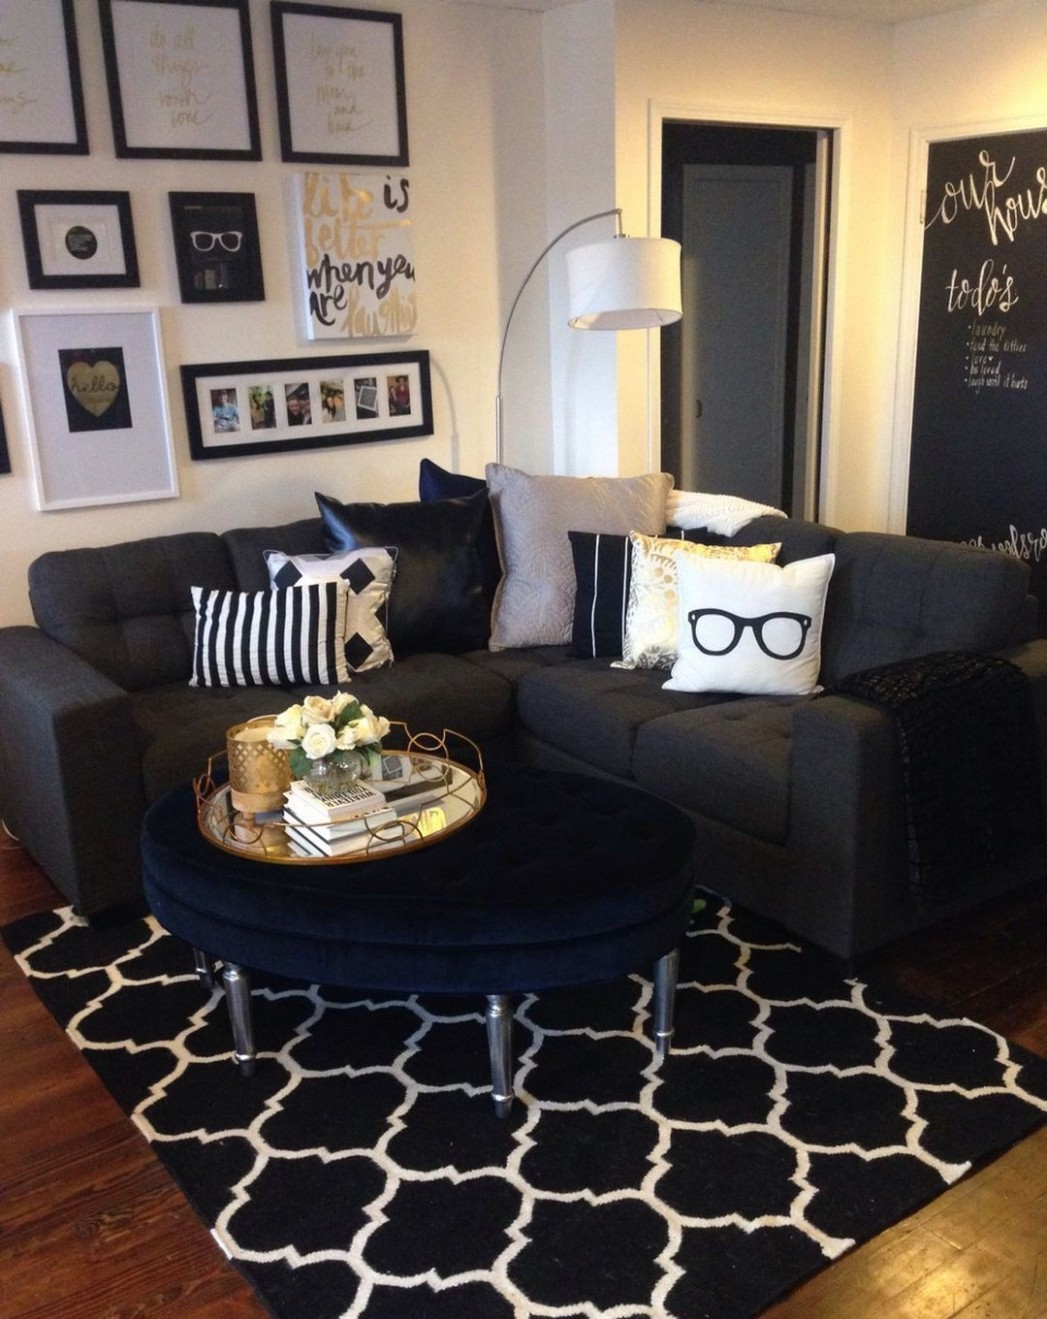 New Apartment Decorating Ideas On A Budget (10)  Apartment  - New Apartment Decorating Ideas